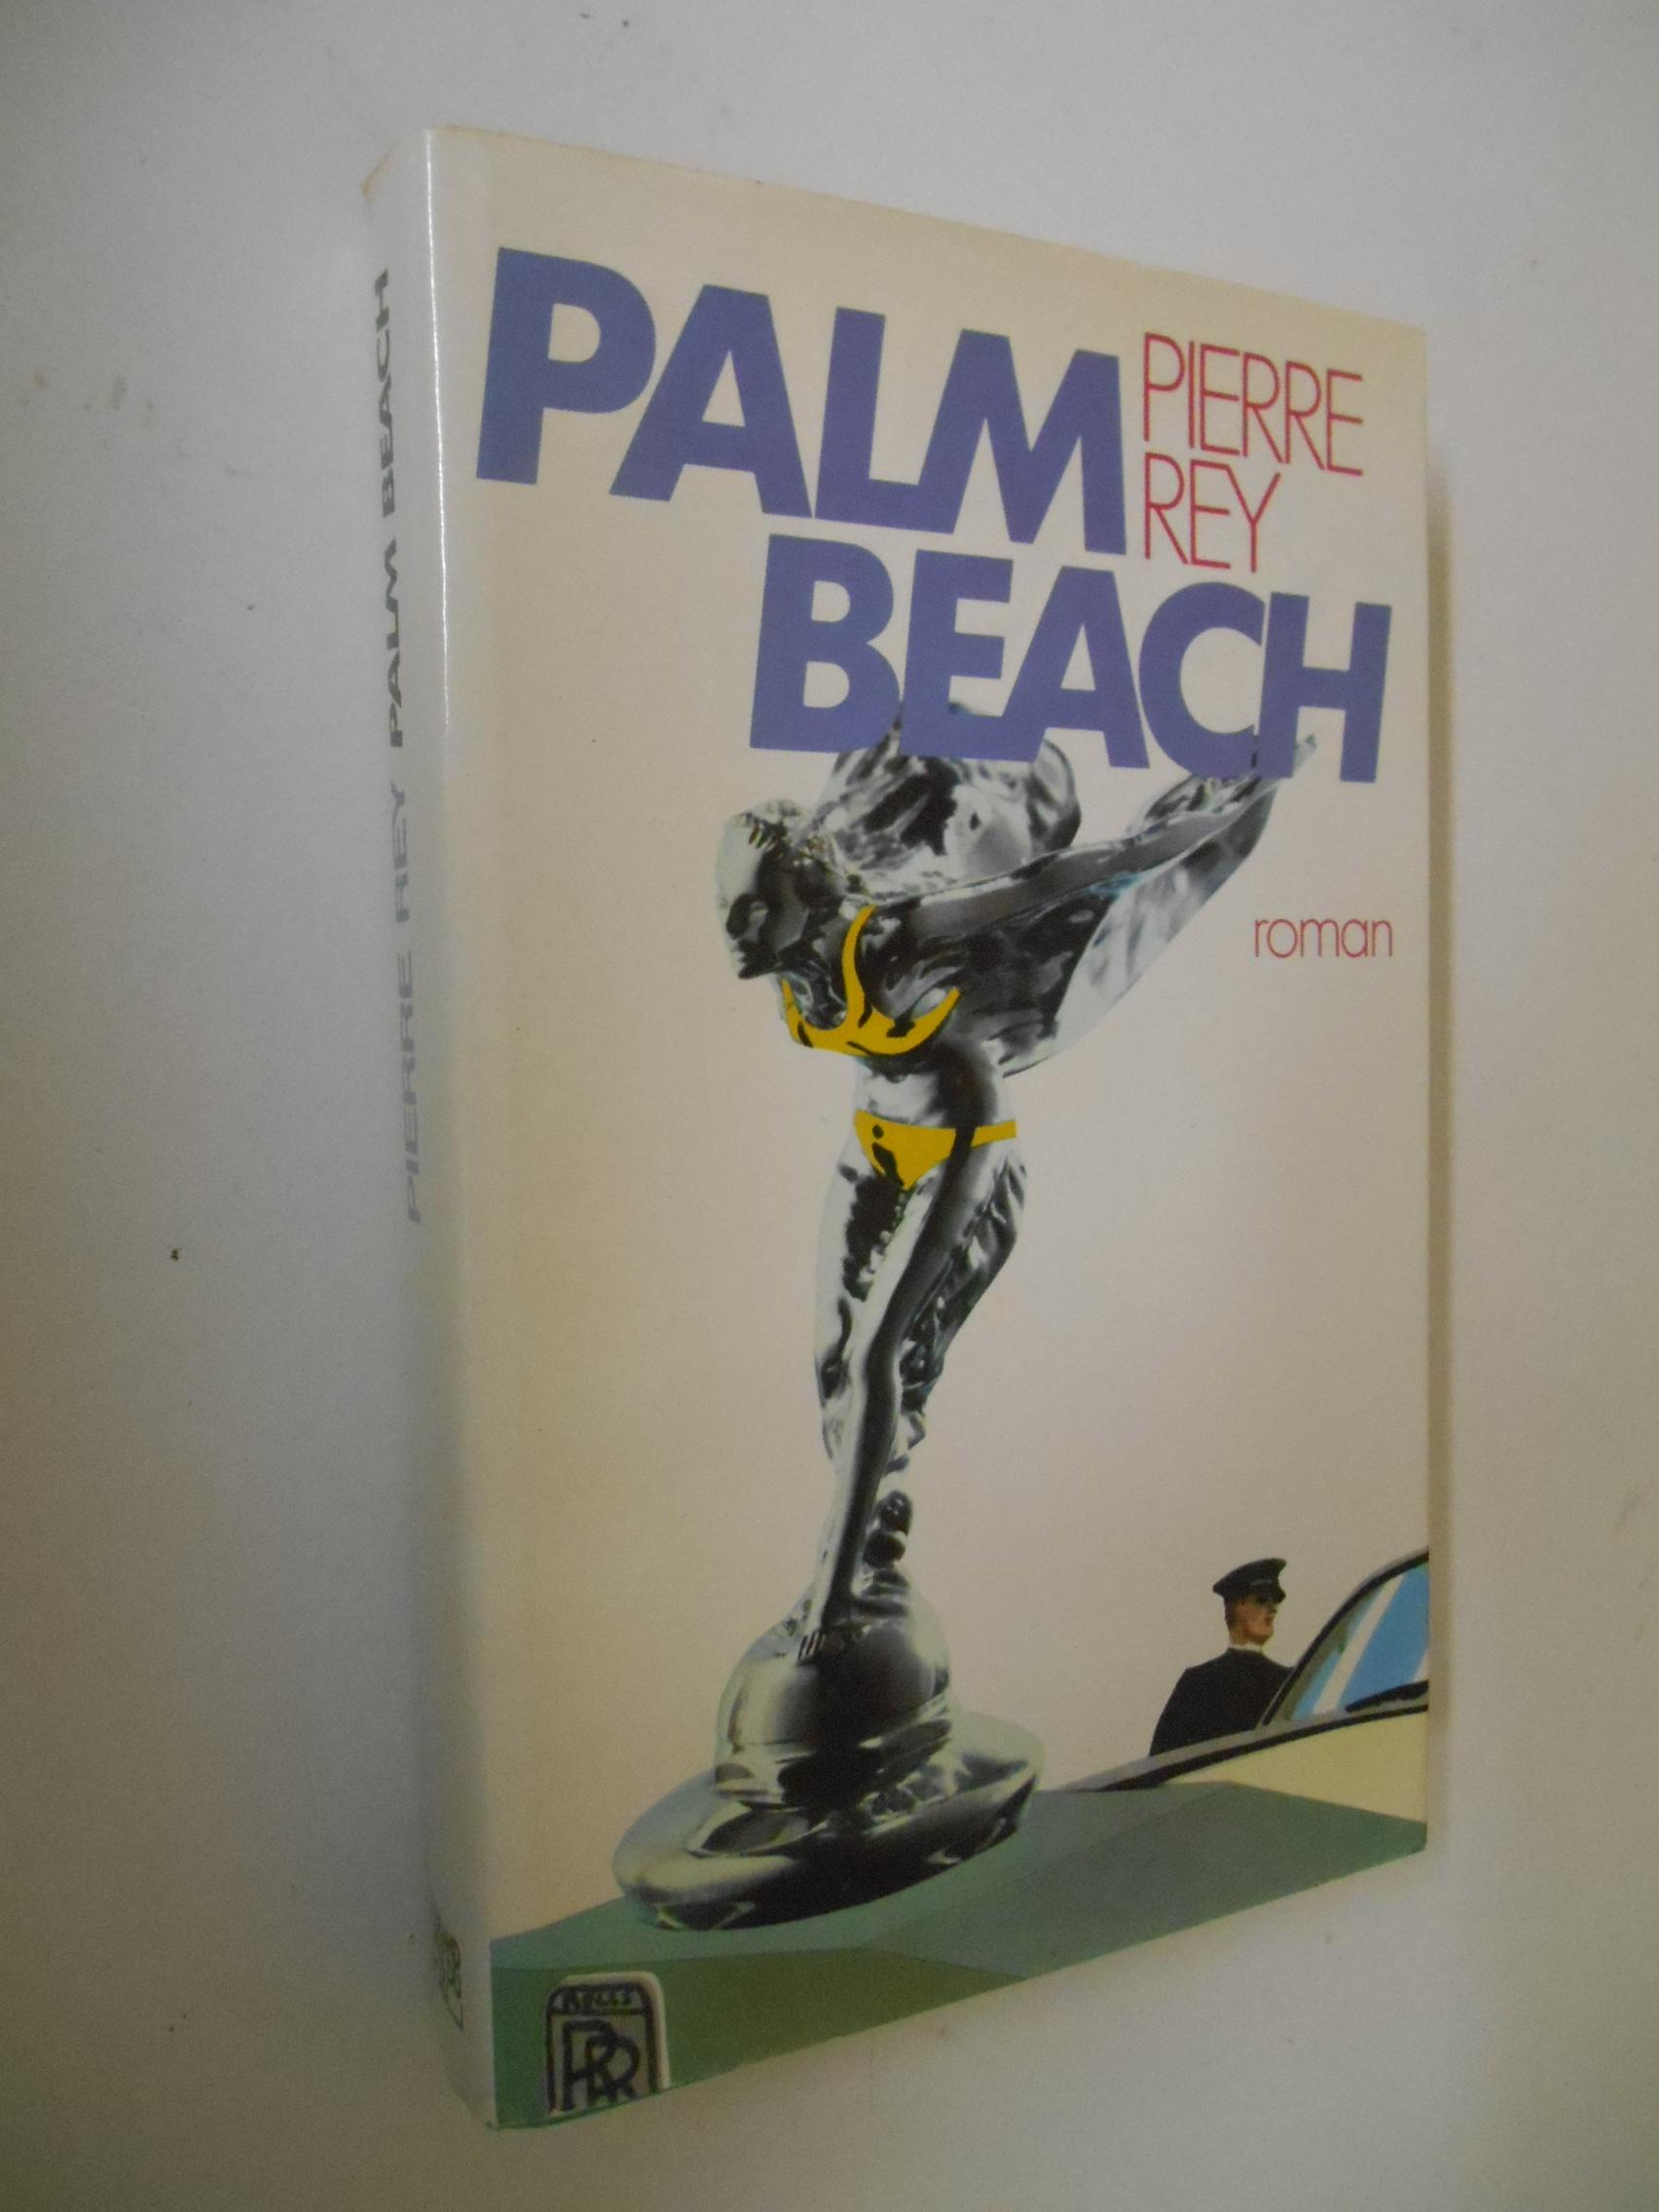 Palm Beach  - Pierre Rey